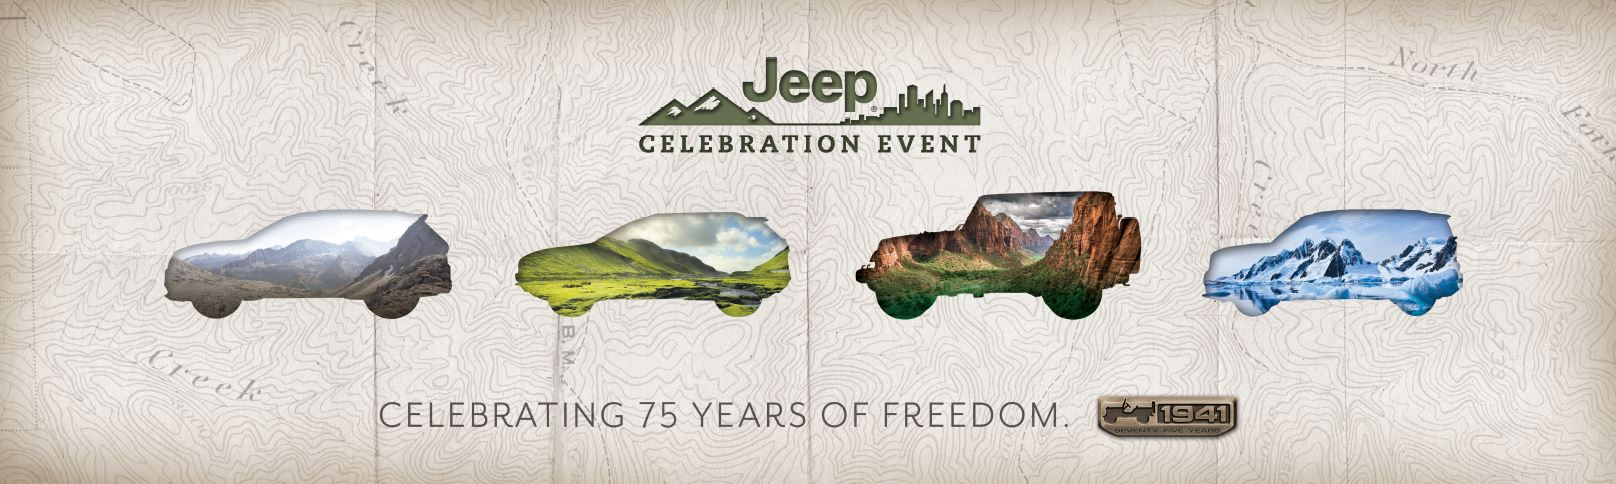 Jeep Celebration Event in Opelousas, LA